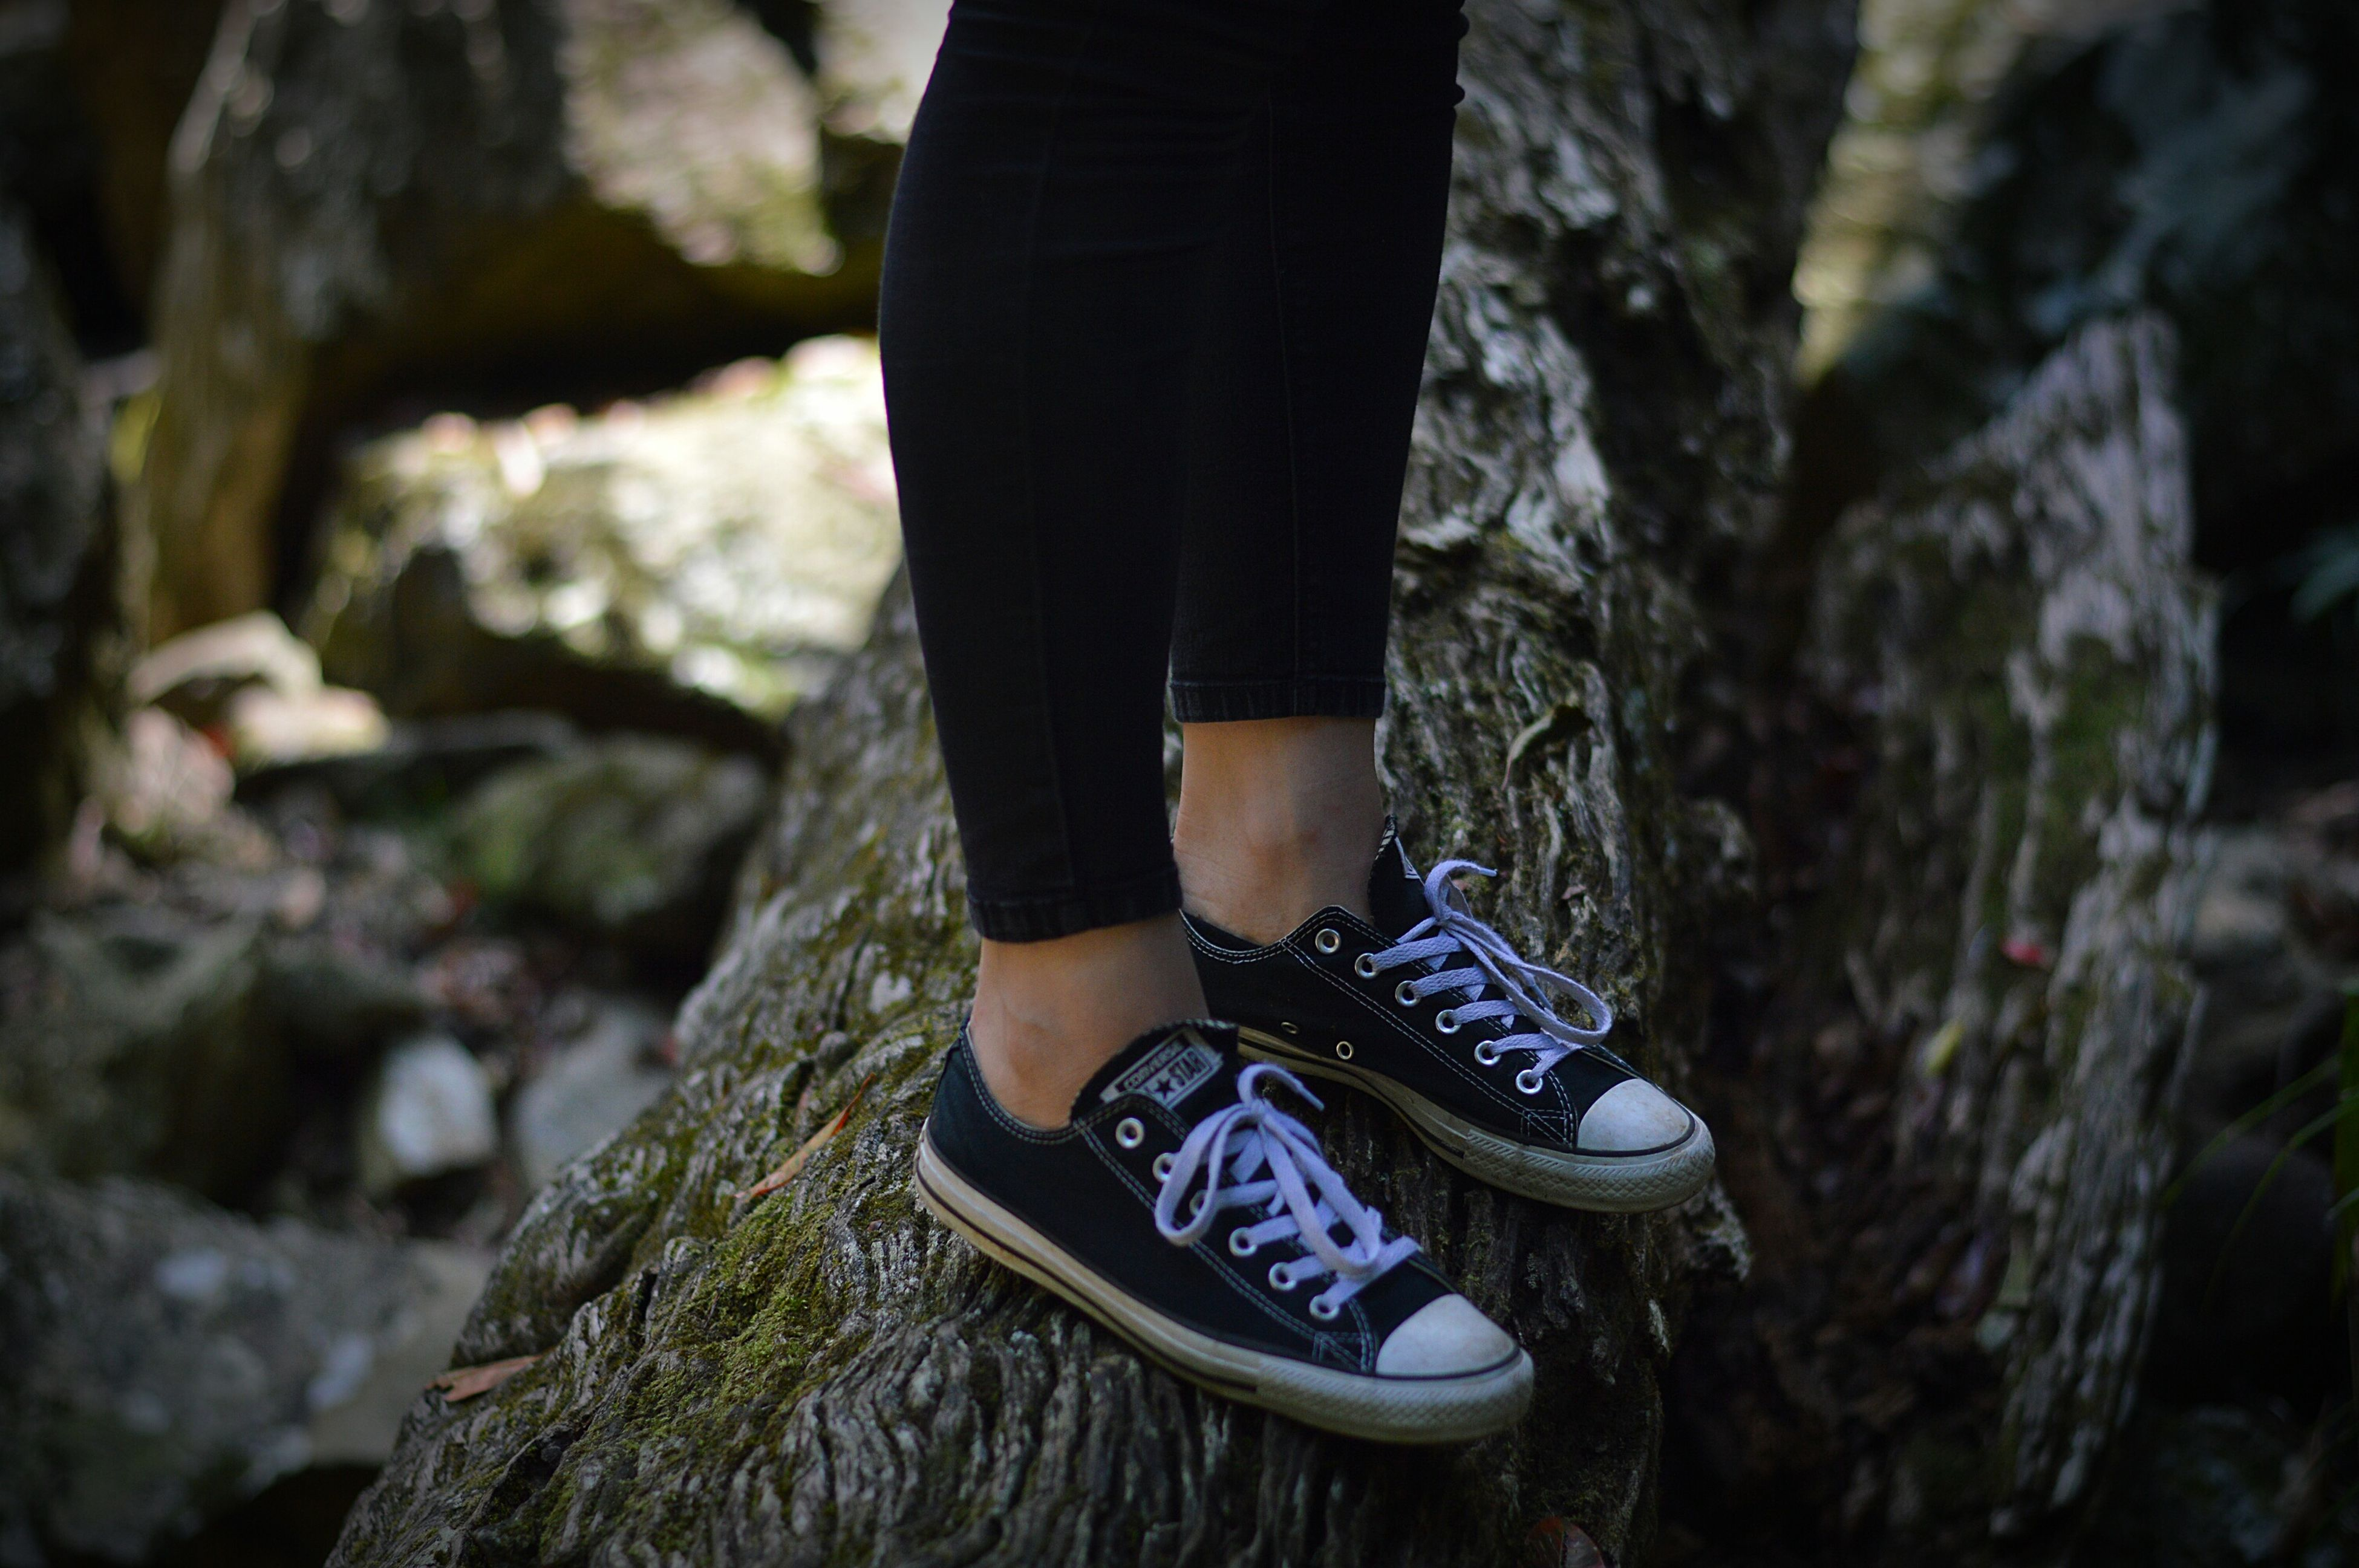 lifestyles, low section, focus on foreground, standing, leisure activity, person, shoe, casual clothing, men, selective focus, outdoors, midsection, day, tree trunk, close-up, rear view